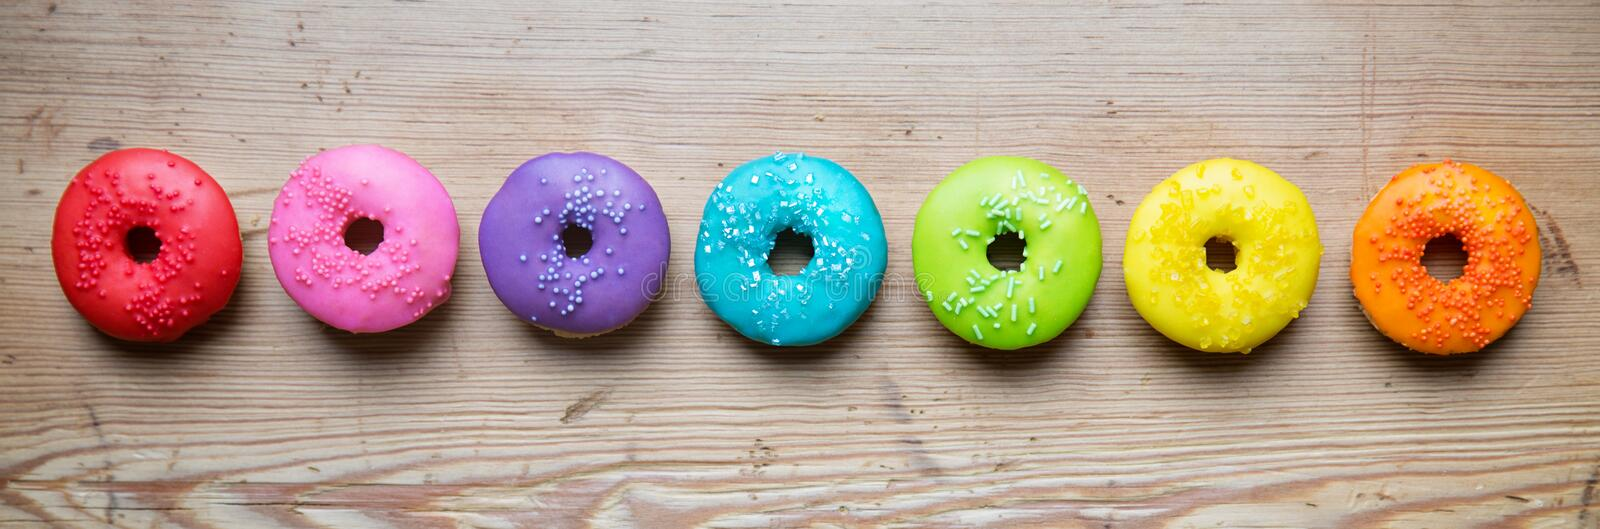 Row of colorful donuts. Colorful donuts in a row